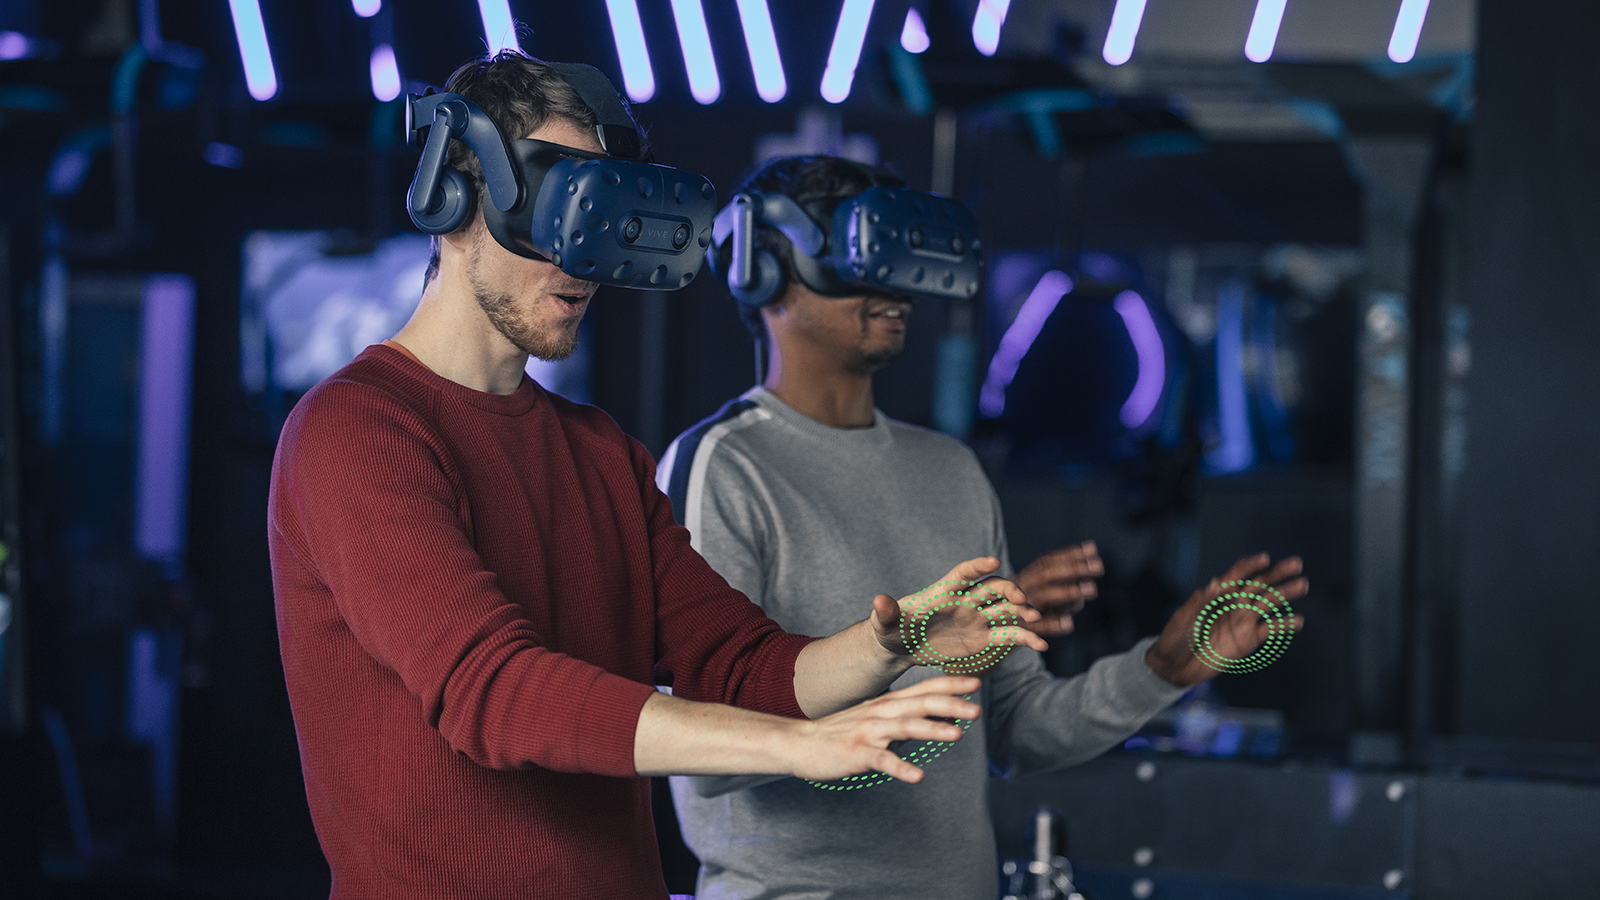 Two men with VR headsets on with green particles